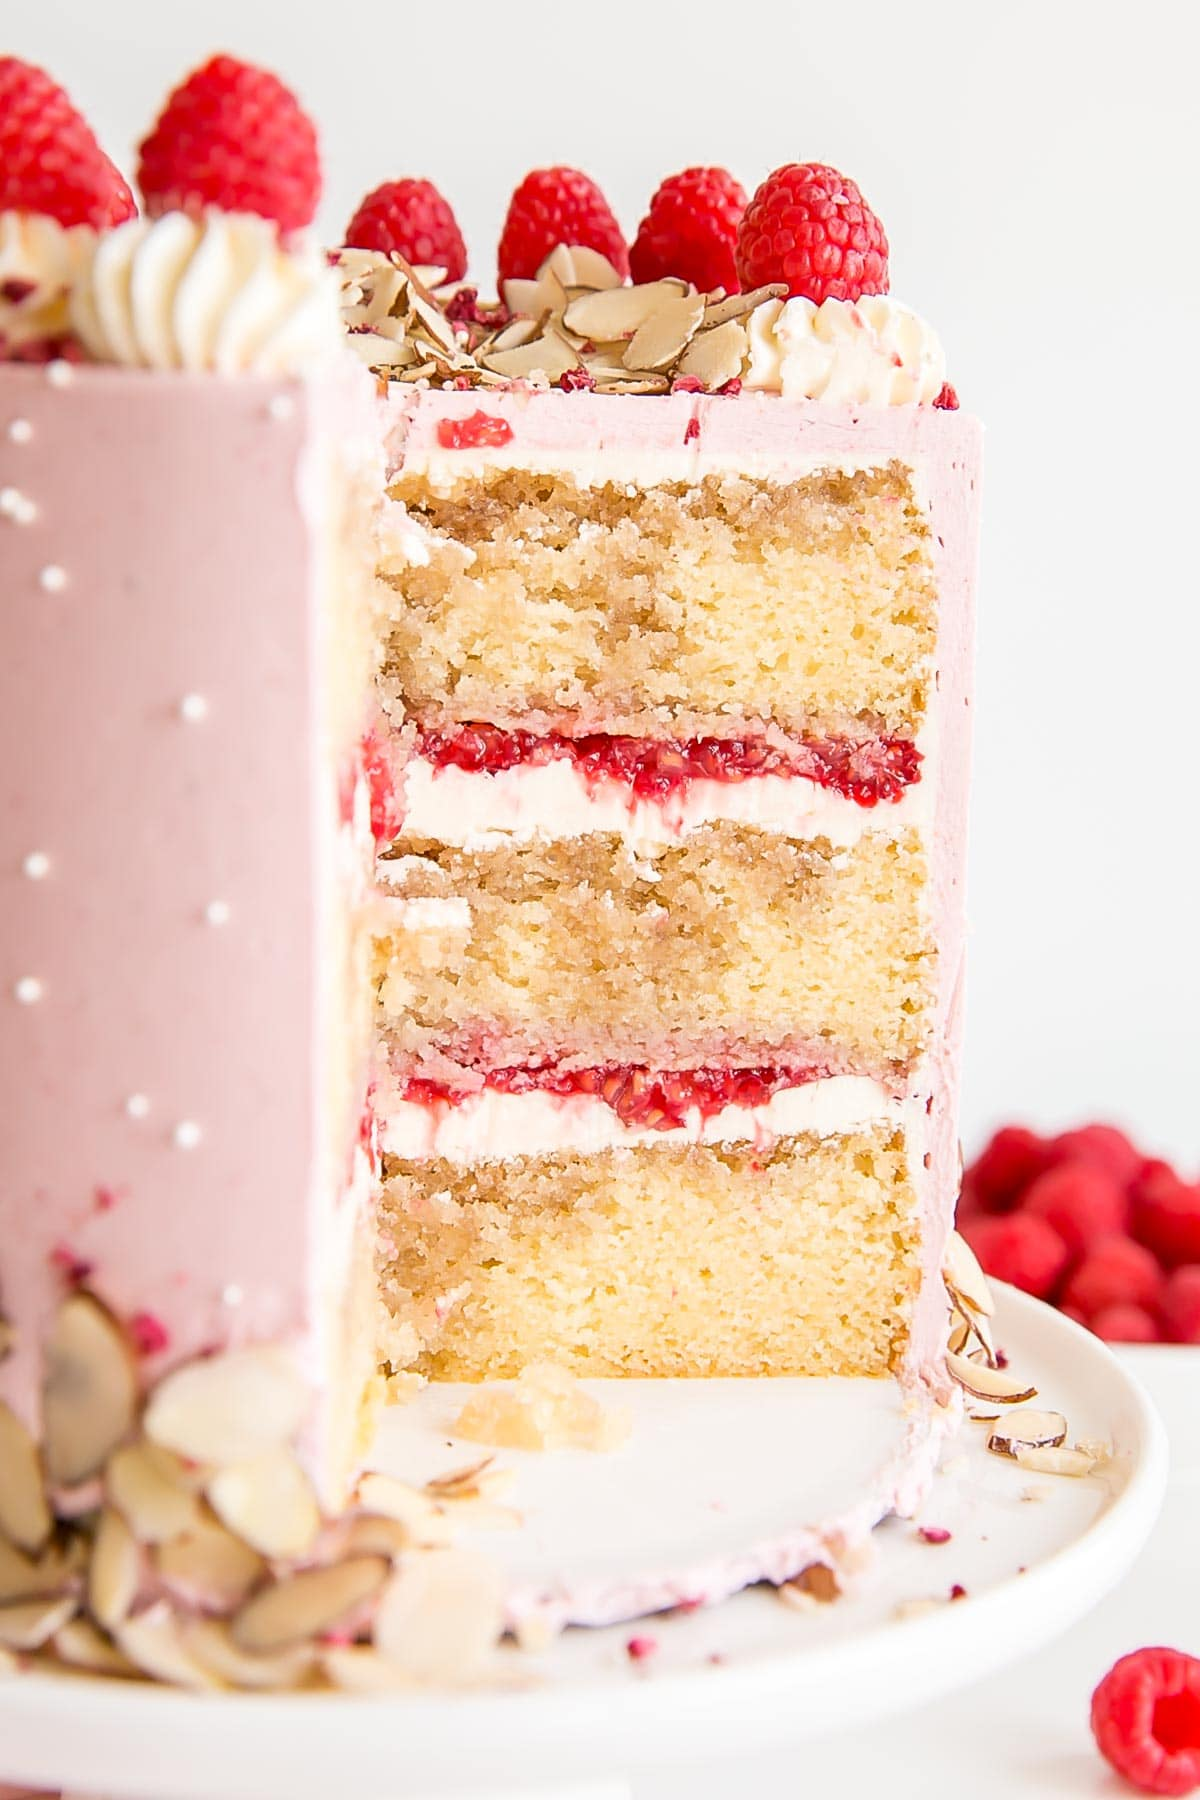 Cross-section of cake showing almond cake layers, almond buttercream, and fresh raspberries.